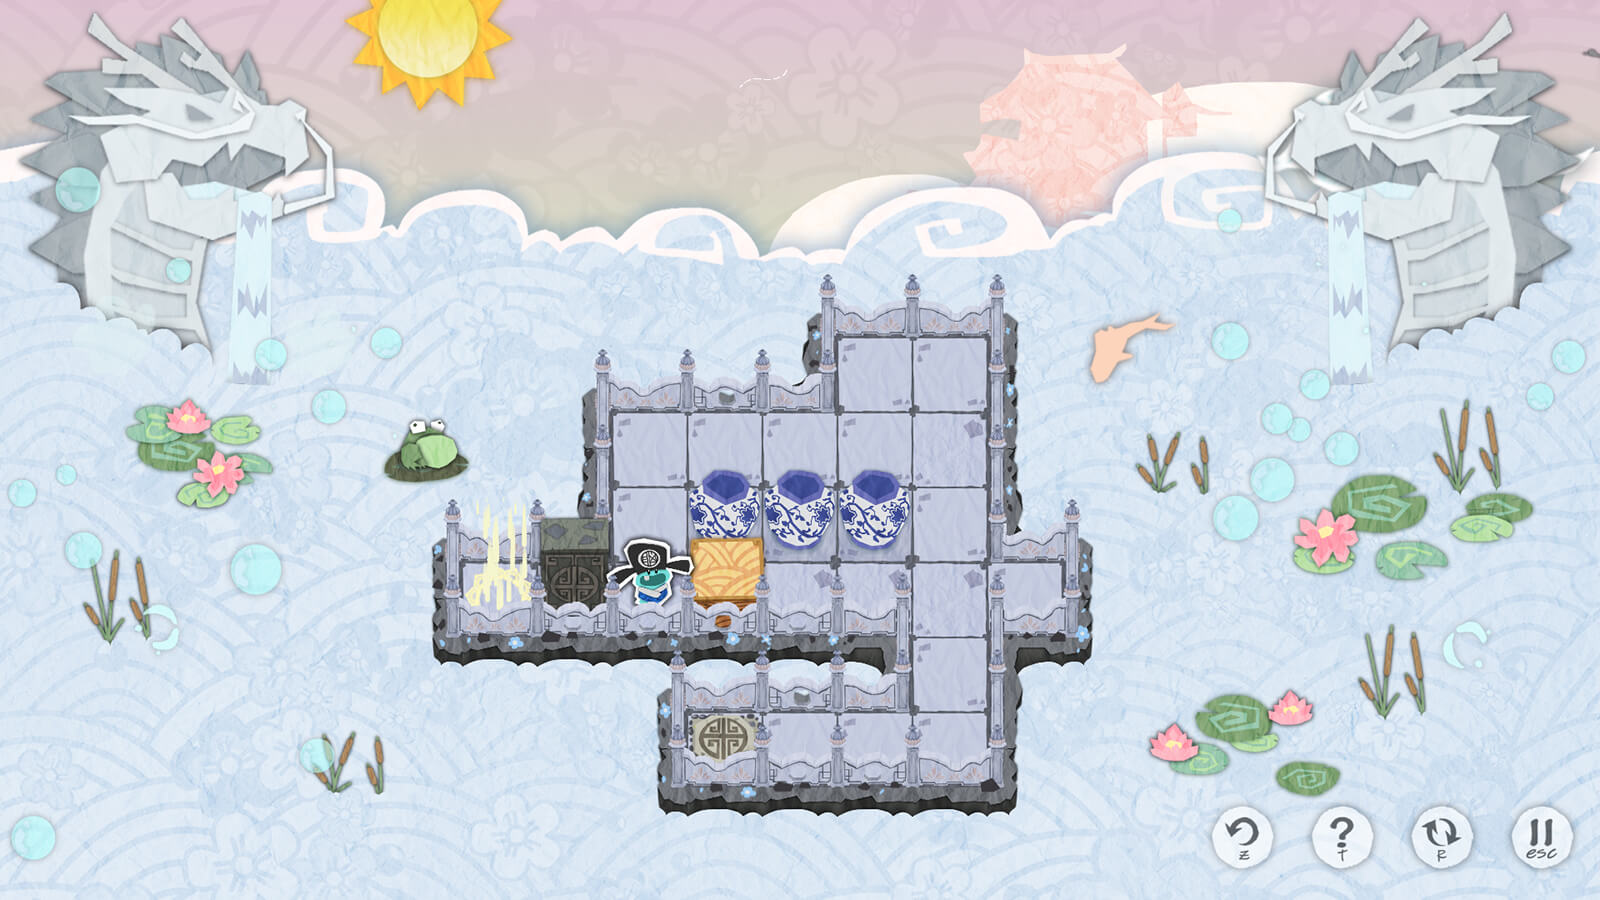 In colorful papercraft-style game art with a watery background, a small blue character stands on a gray puzzle grid platform.